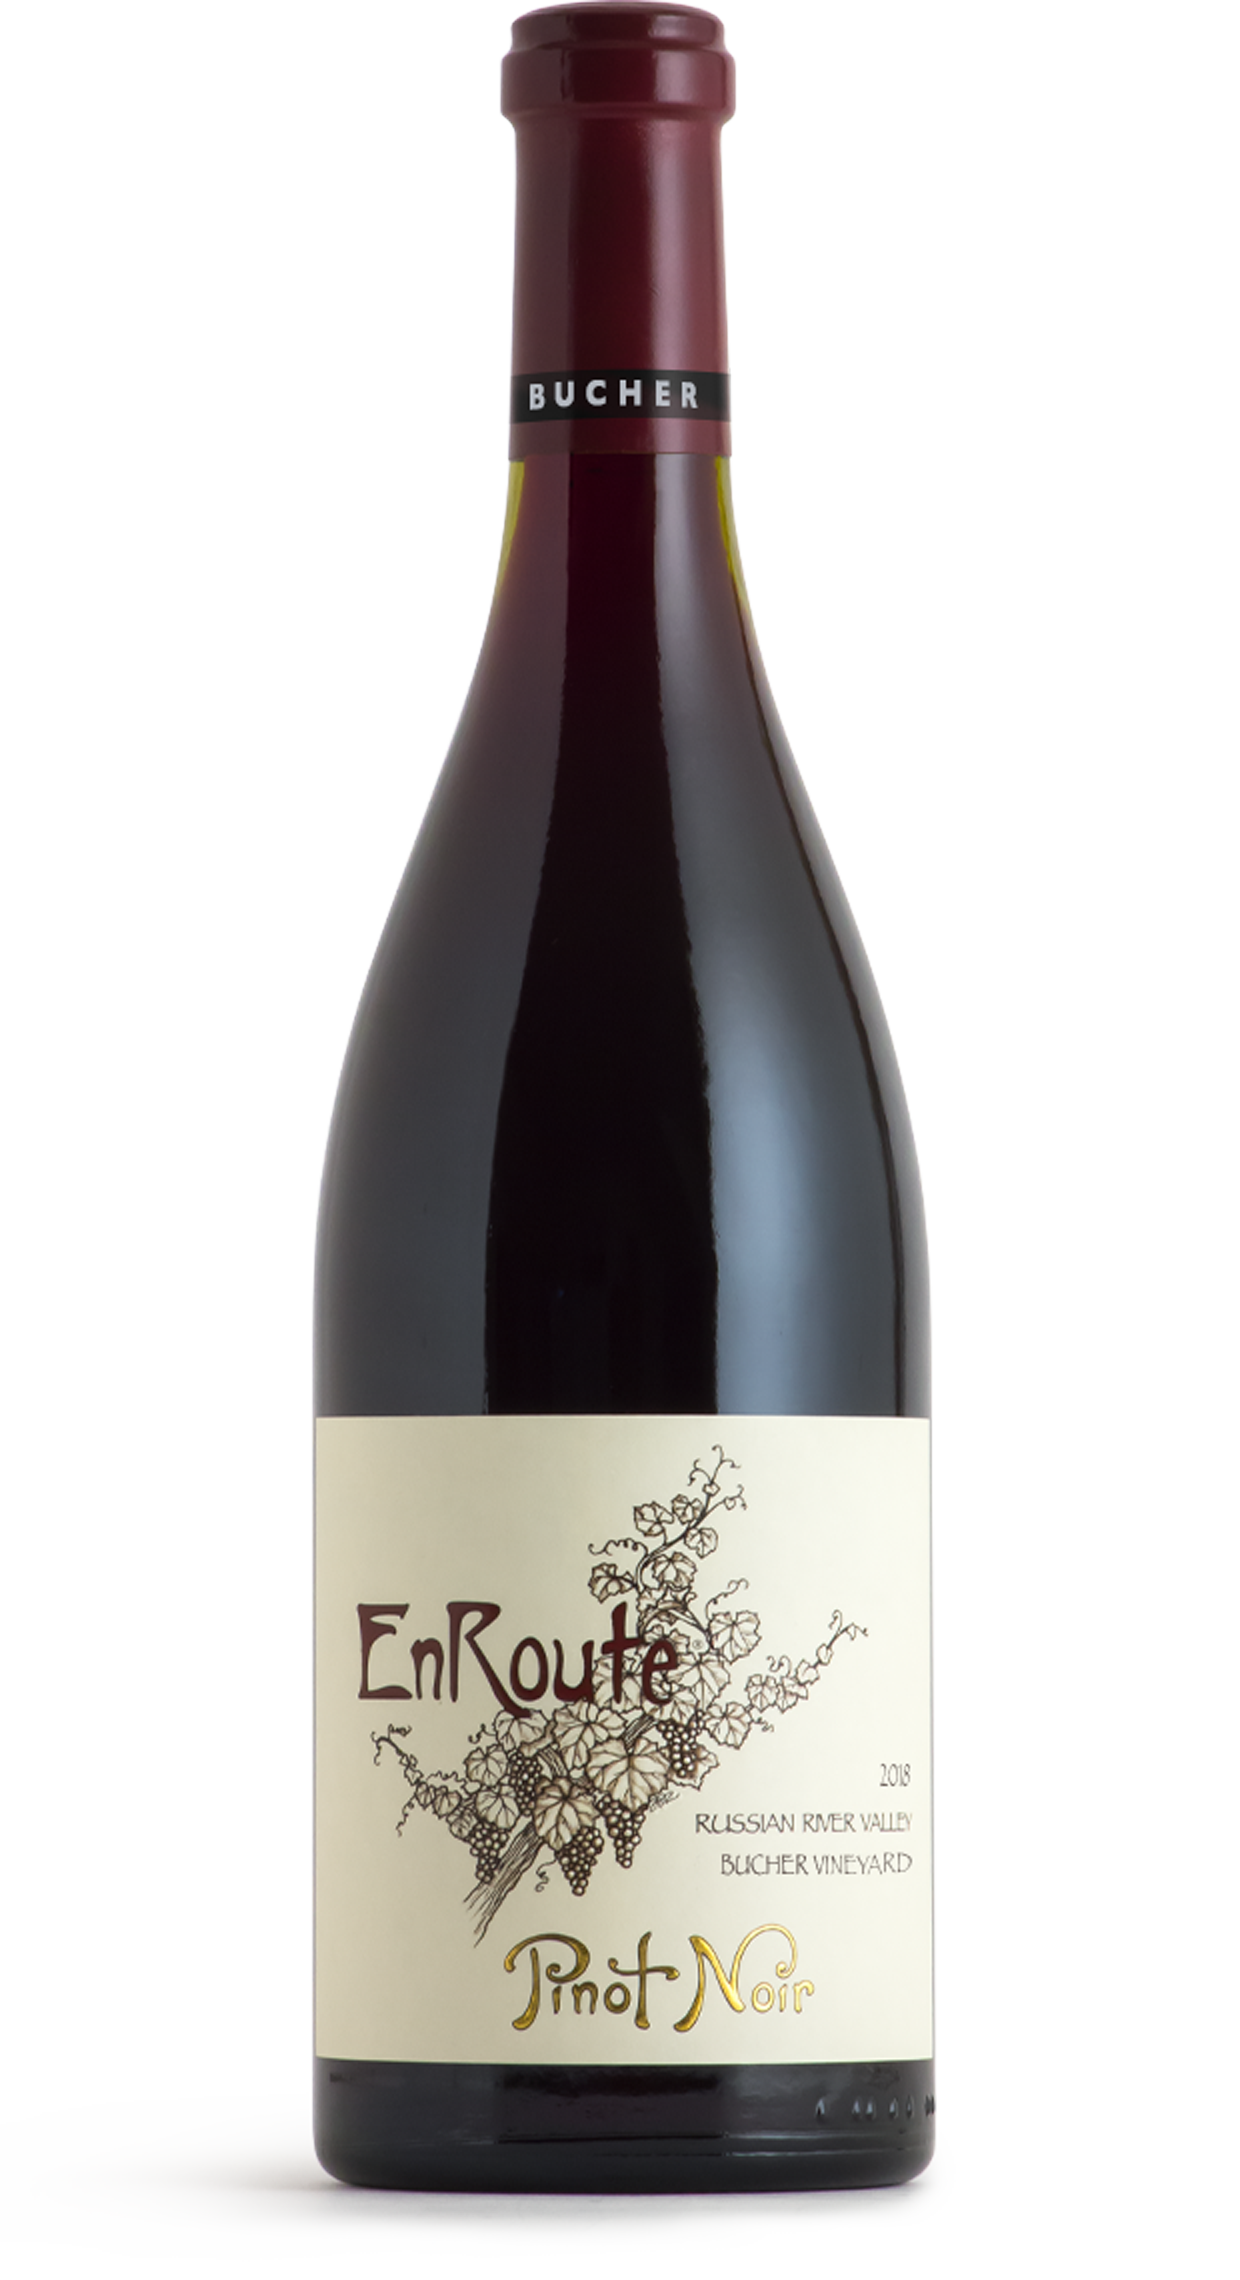 2018 EnRoute Bucher Vineyard Pinot Noir